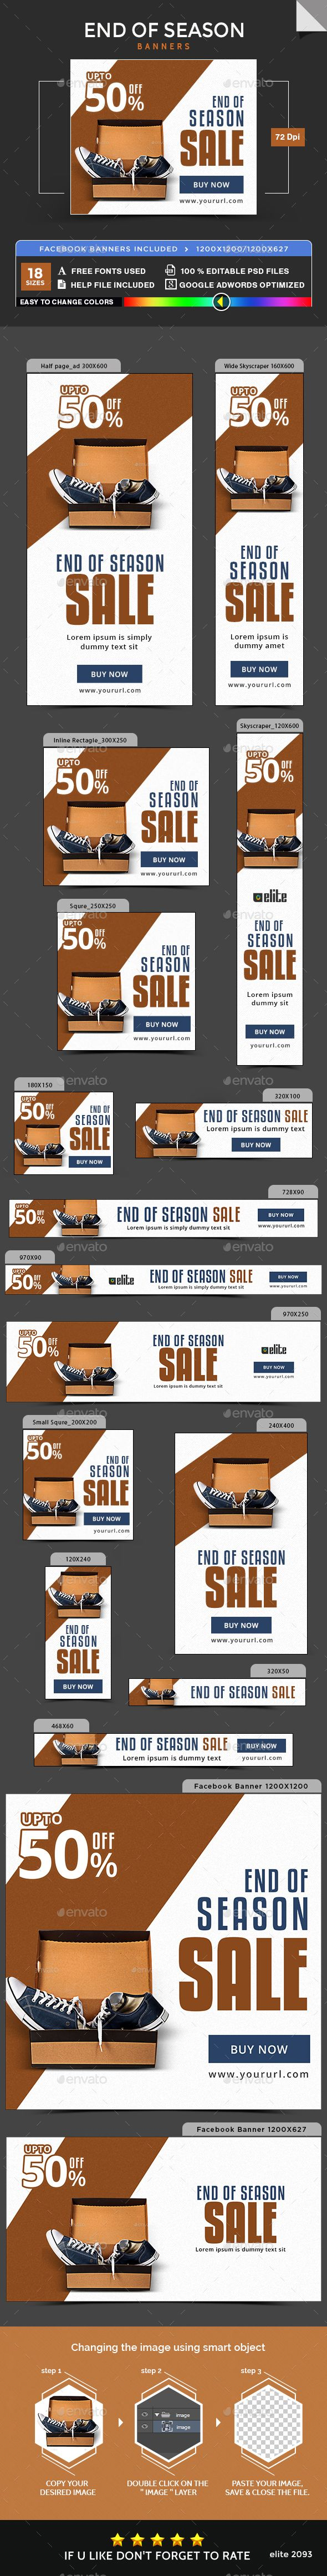 End of Season Banners Template PSD #ads